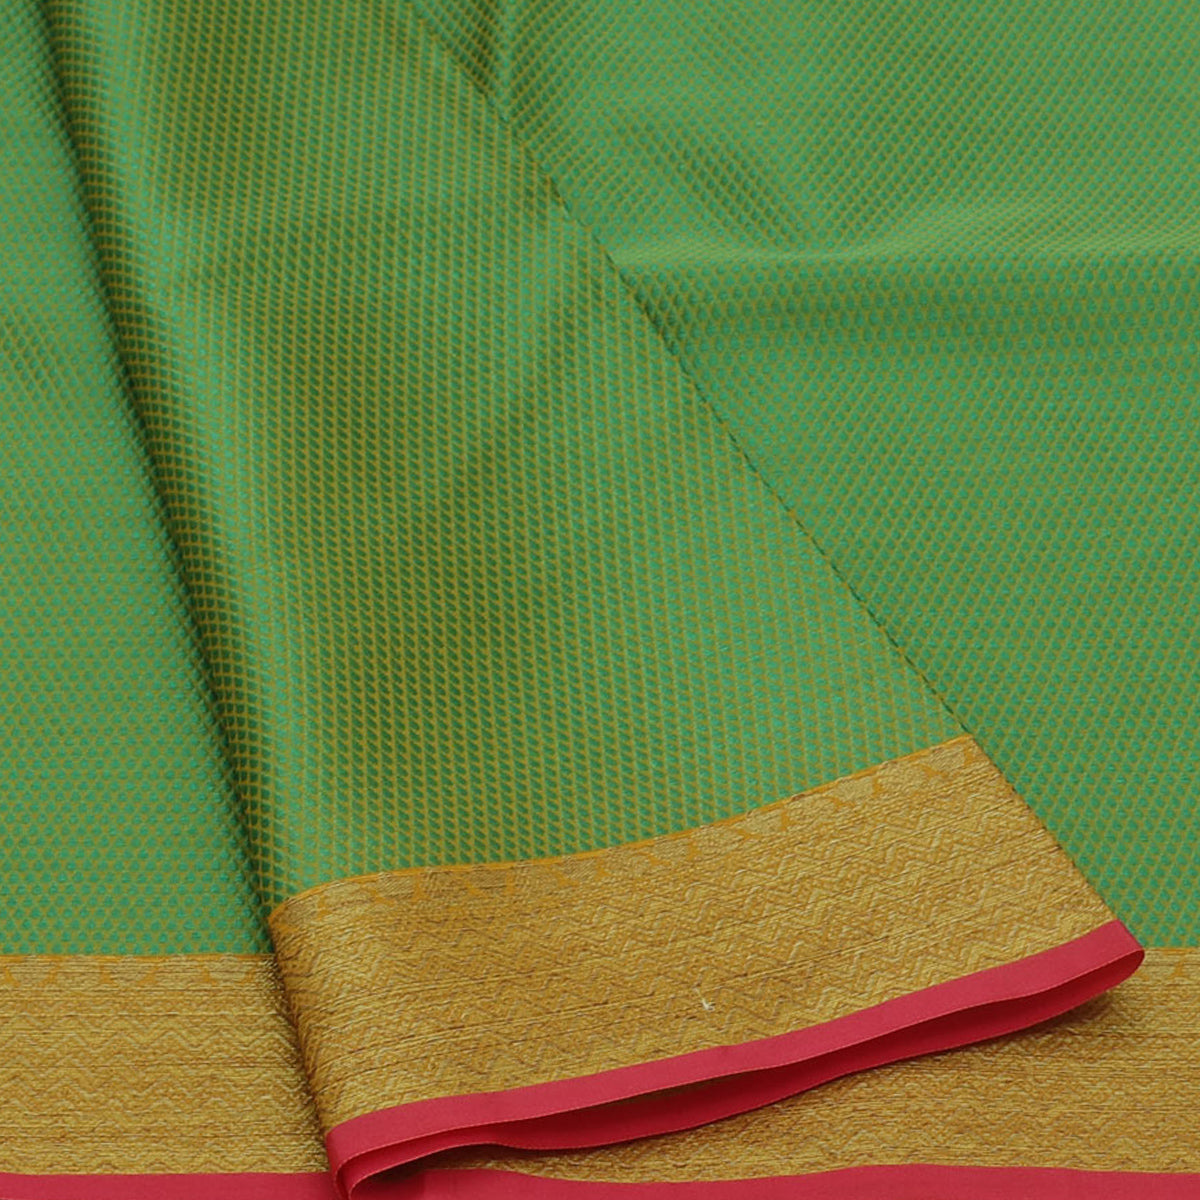 Banarasi Kora Muslin Saree Green and Pink with Simple border